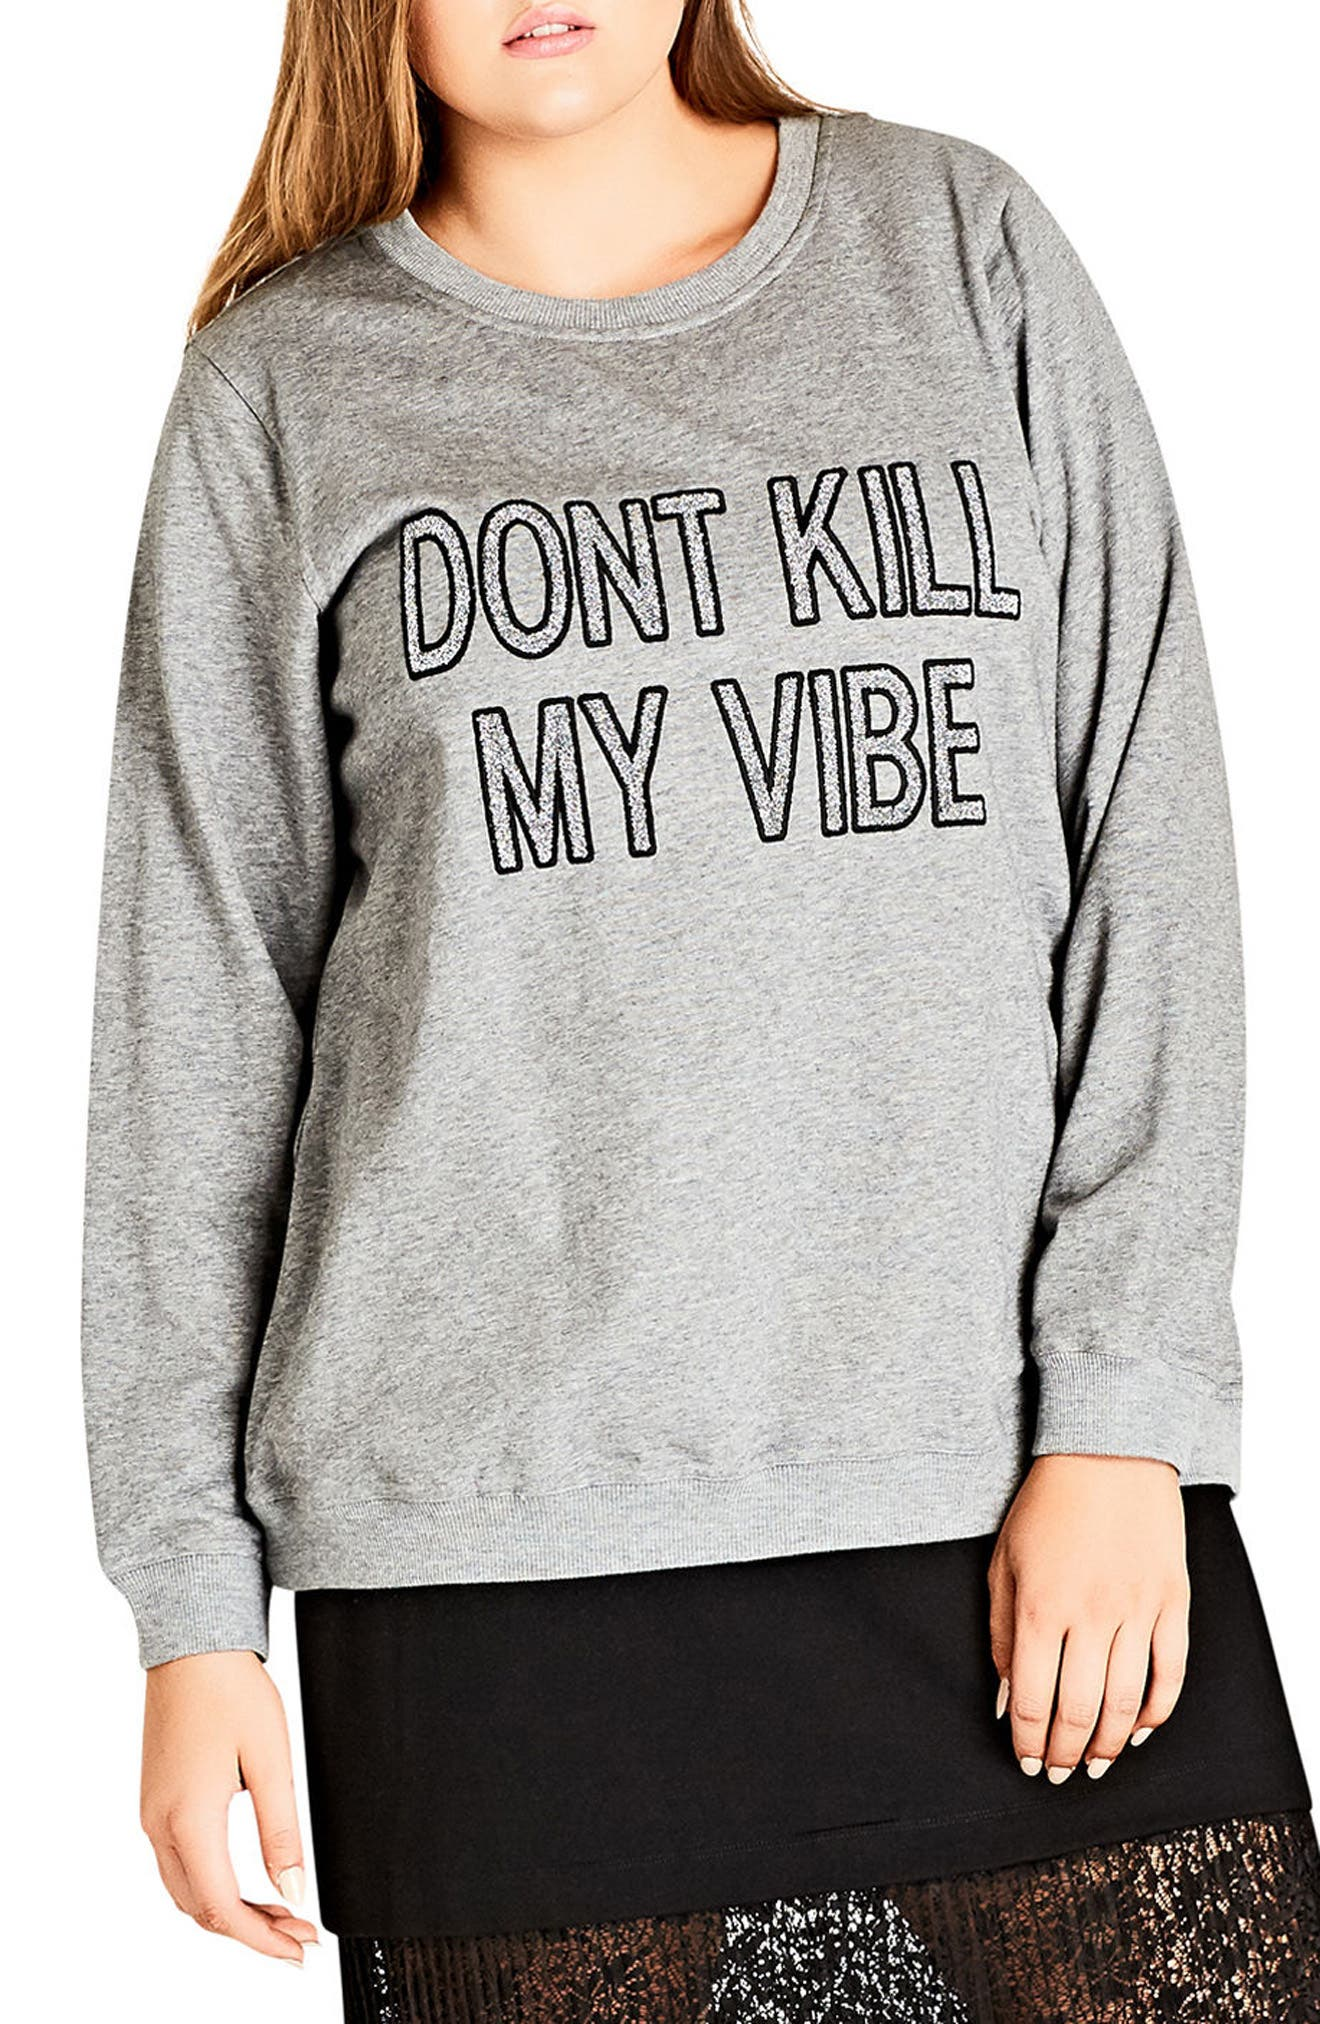 Vibes Glitter Graphic Sweatshirt,                             Main thumbnail 1, color,                             011